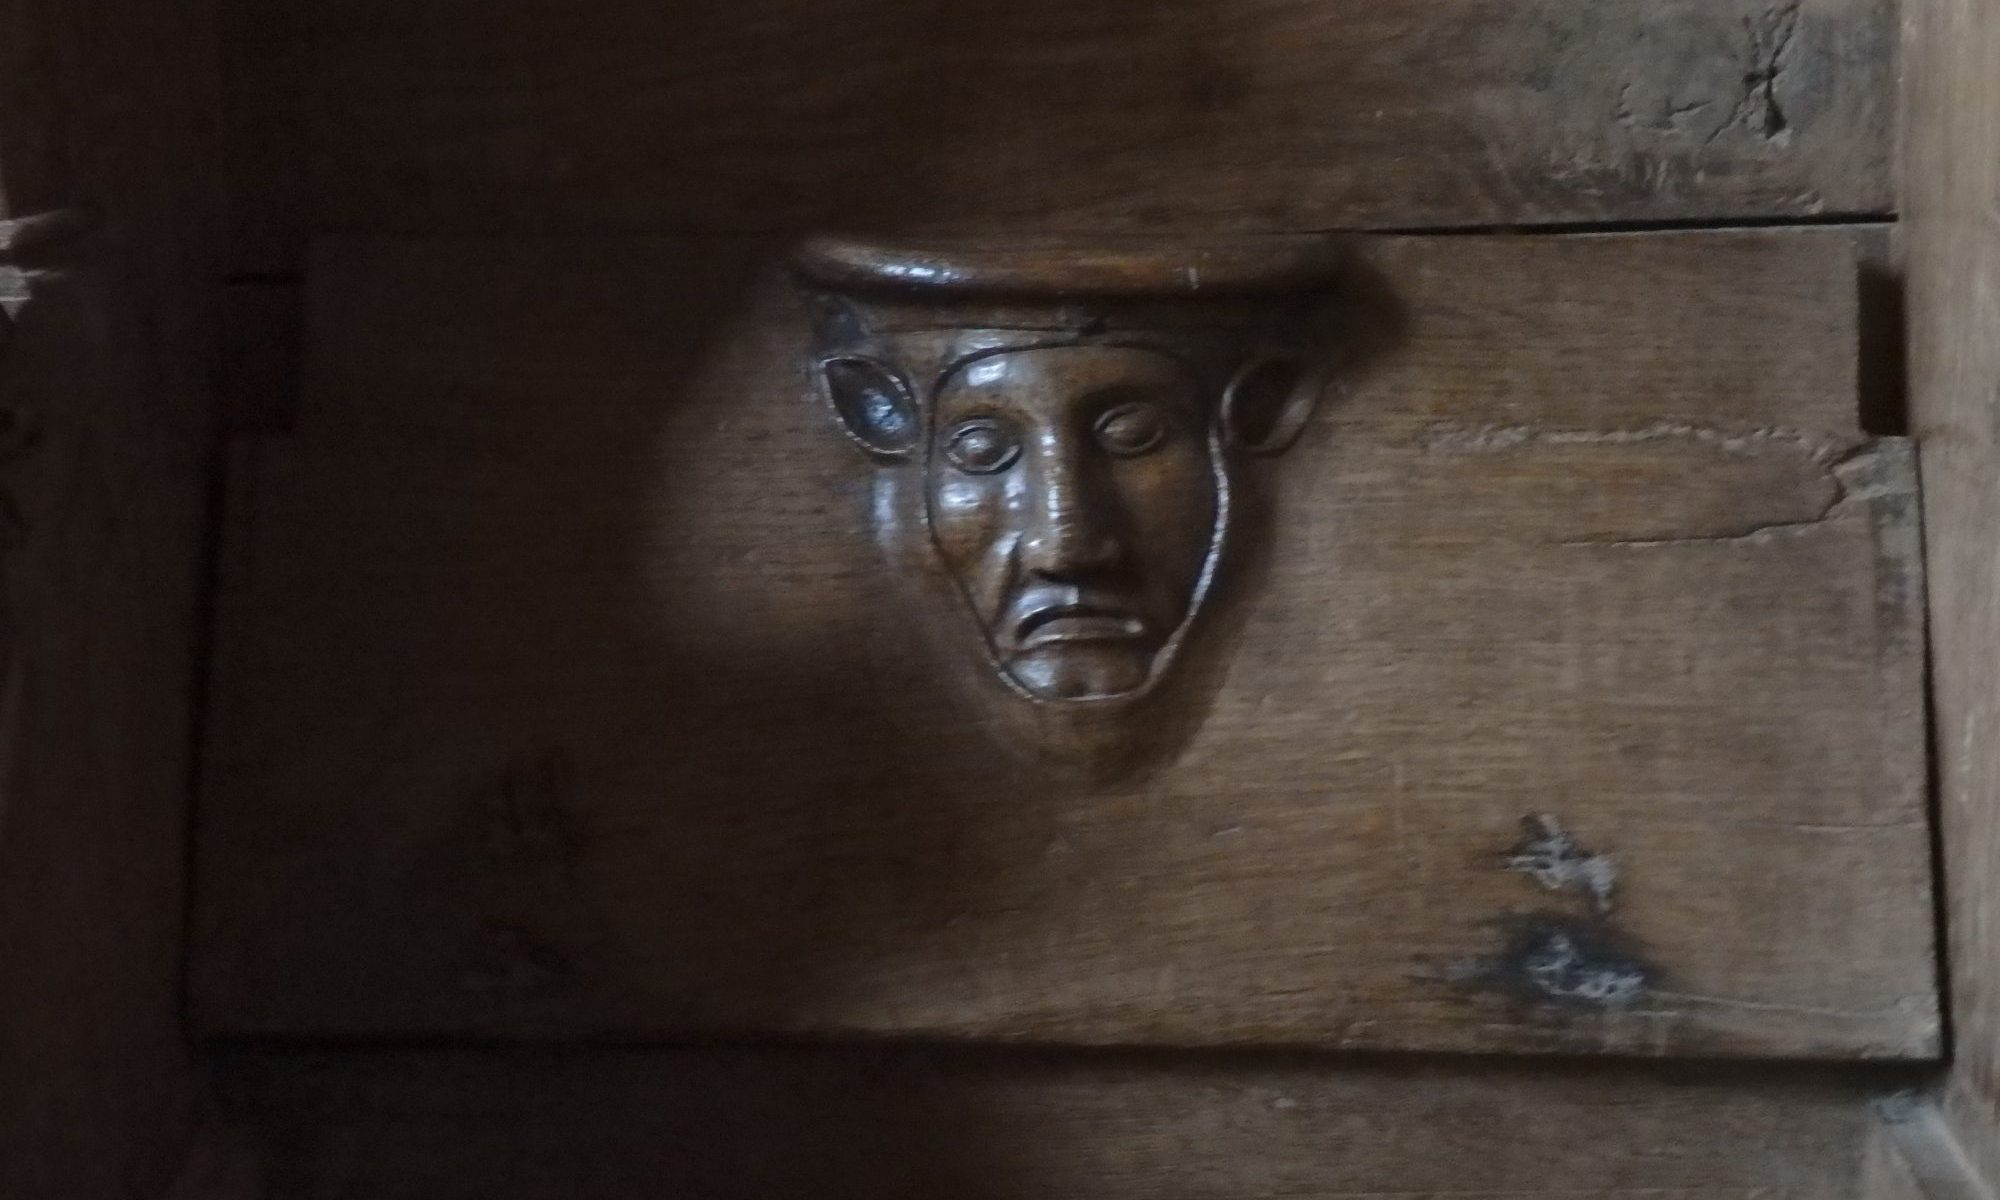 a misericord at Klooster Ter Apel in the Netherlands